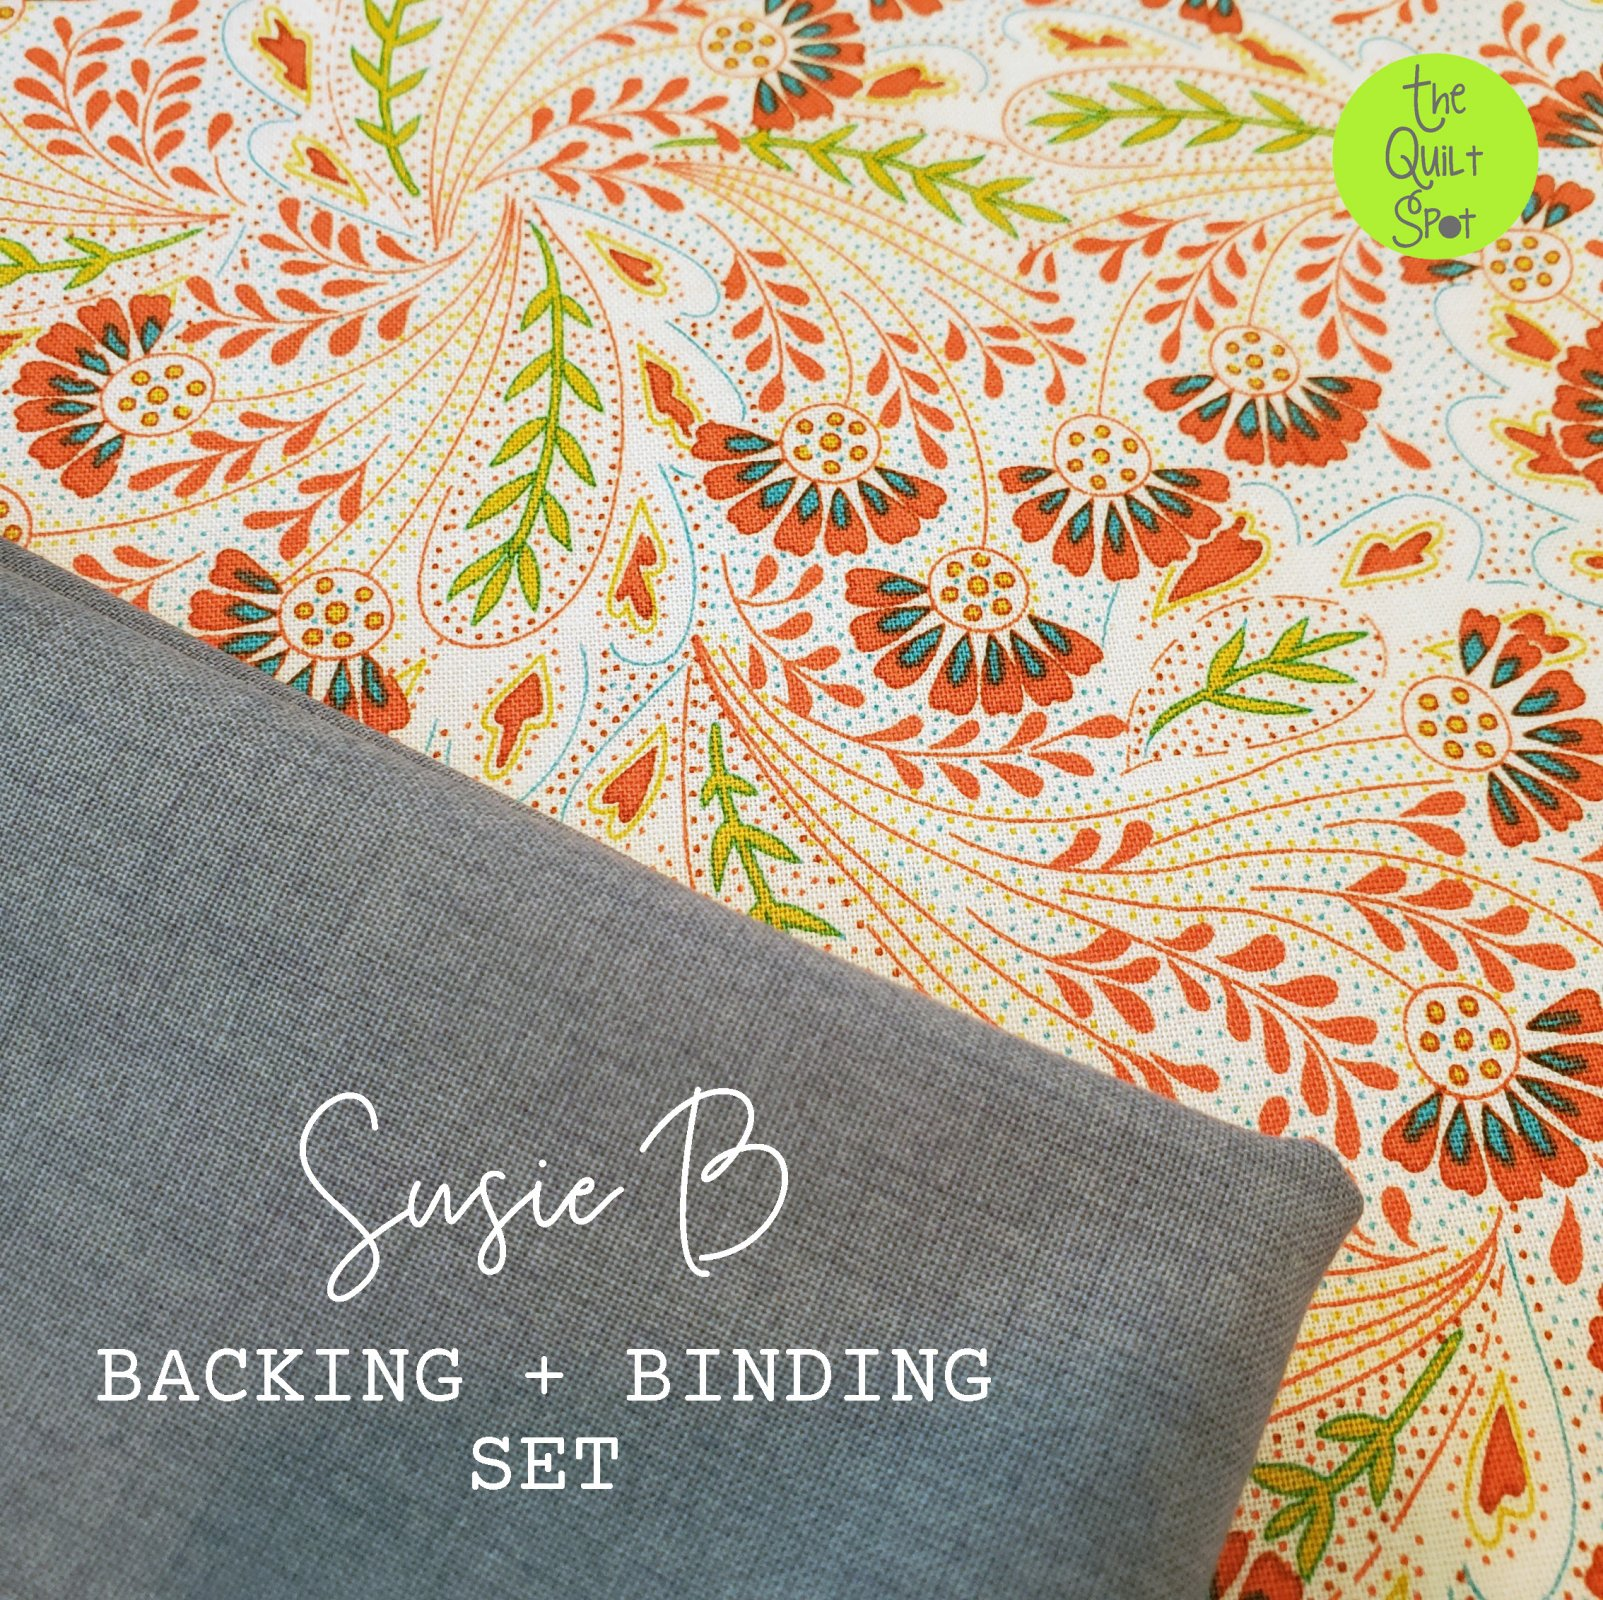 Susie B Backing & Binding Kit